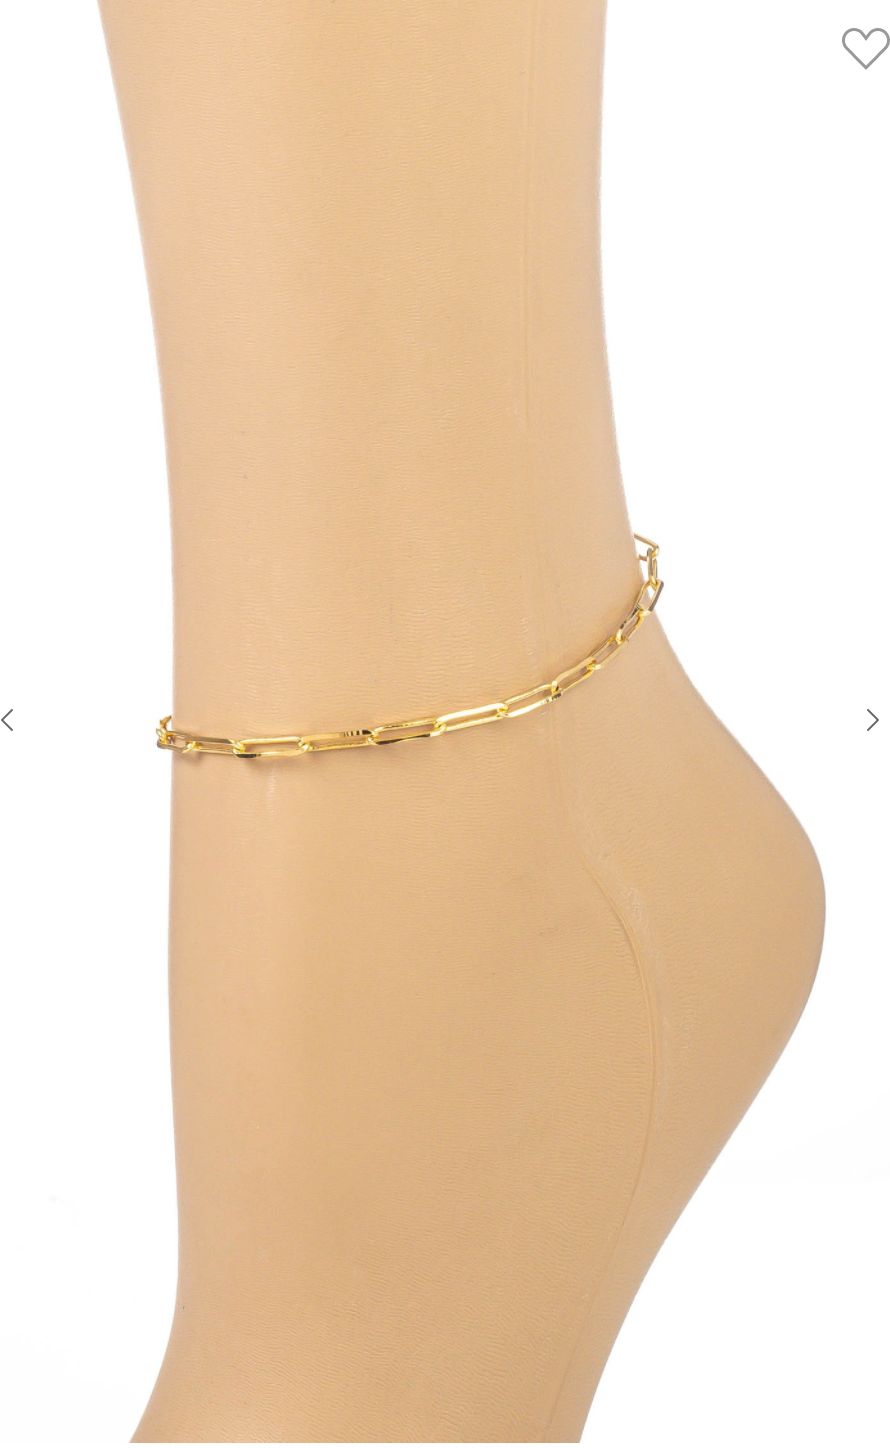 Dainty Oval Chain Link Anklet